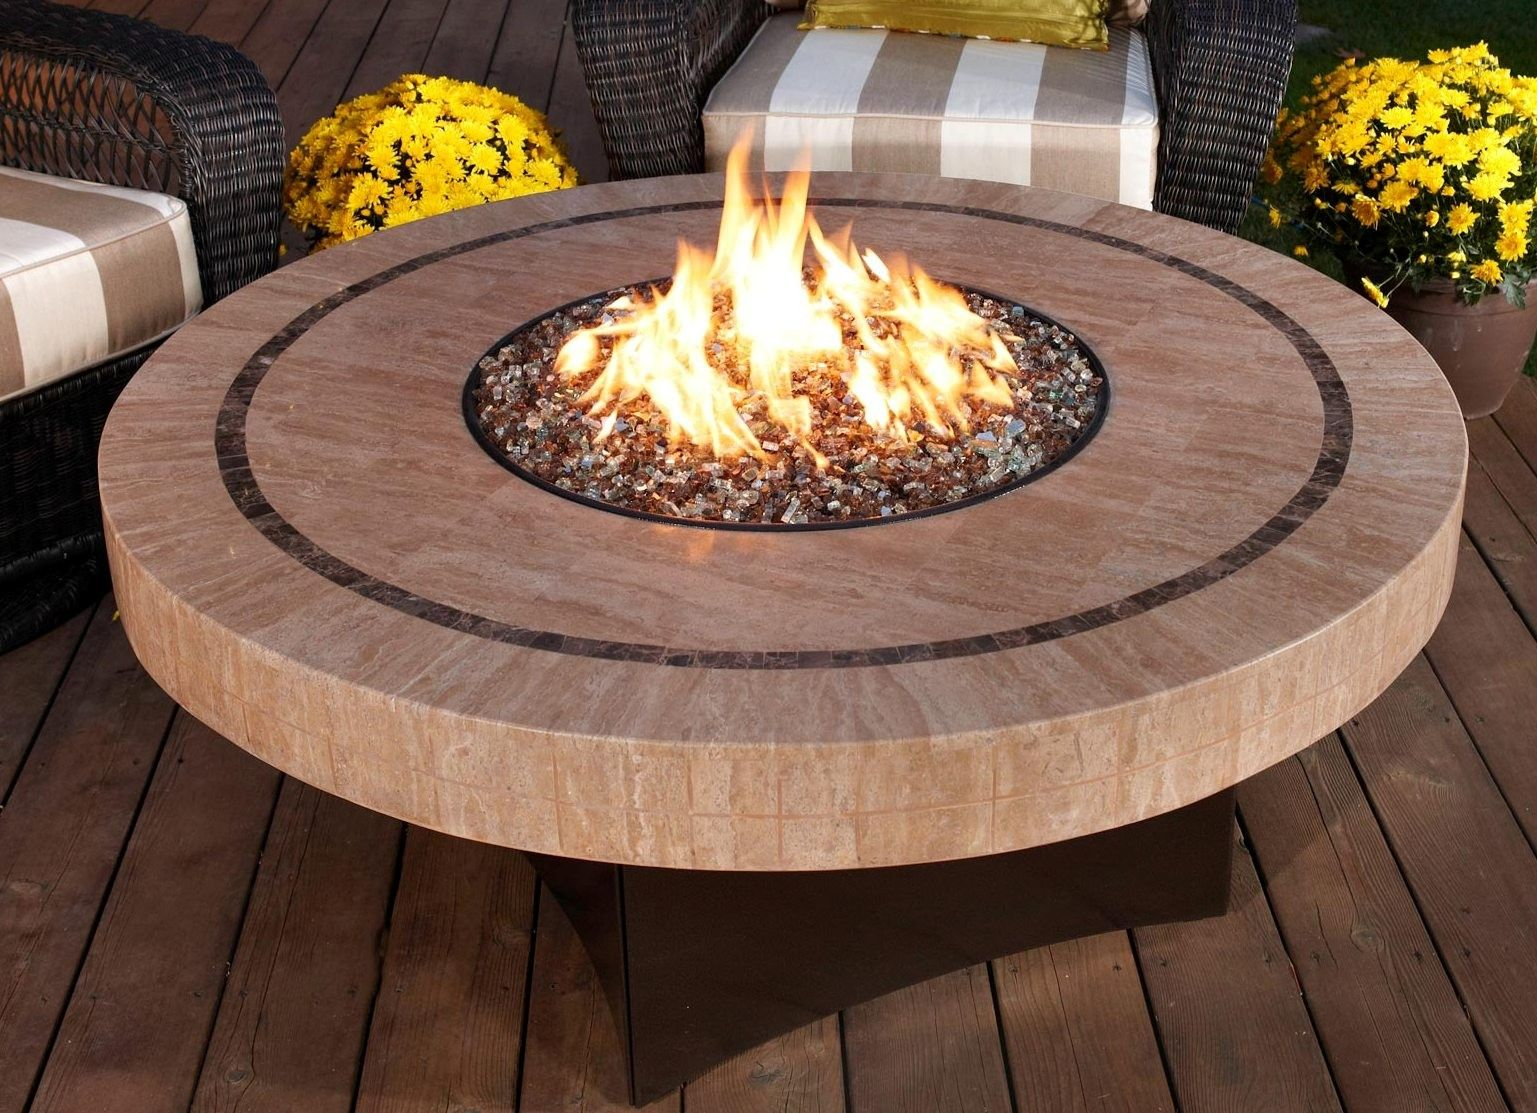 Patio Furniture With Gas Fire Pit